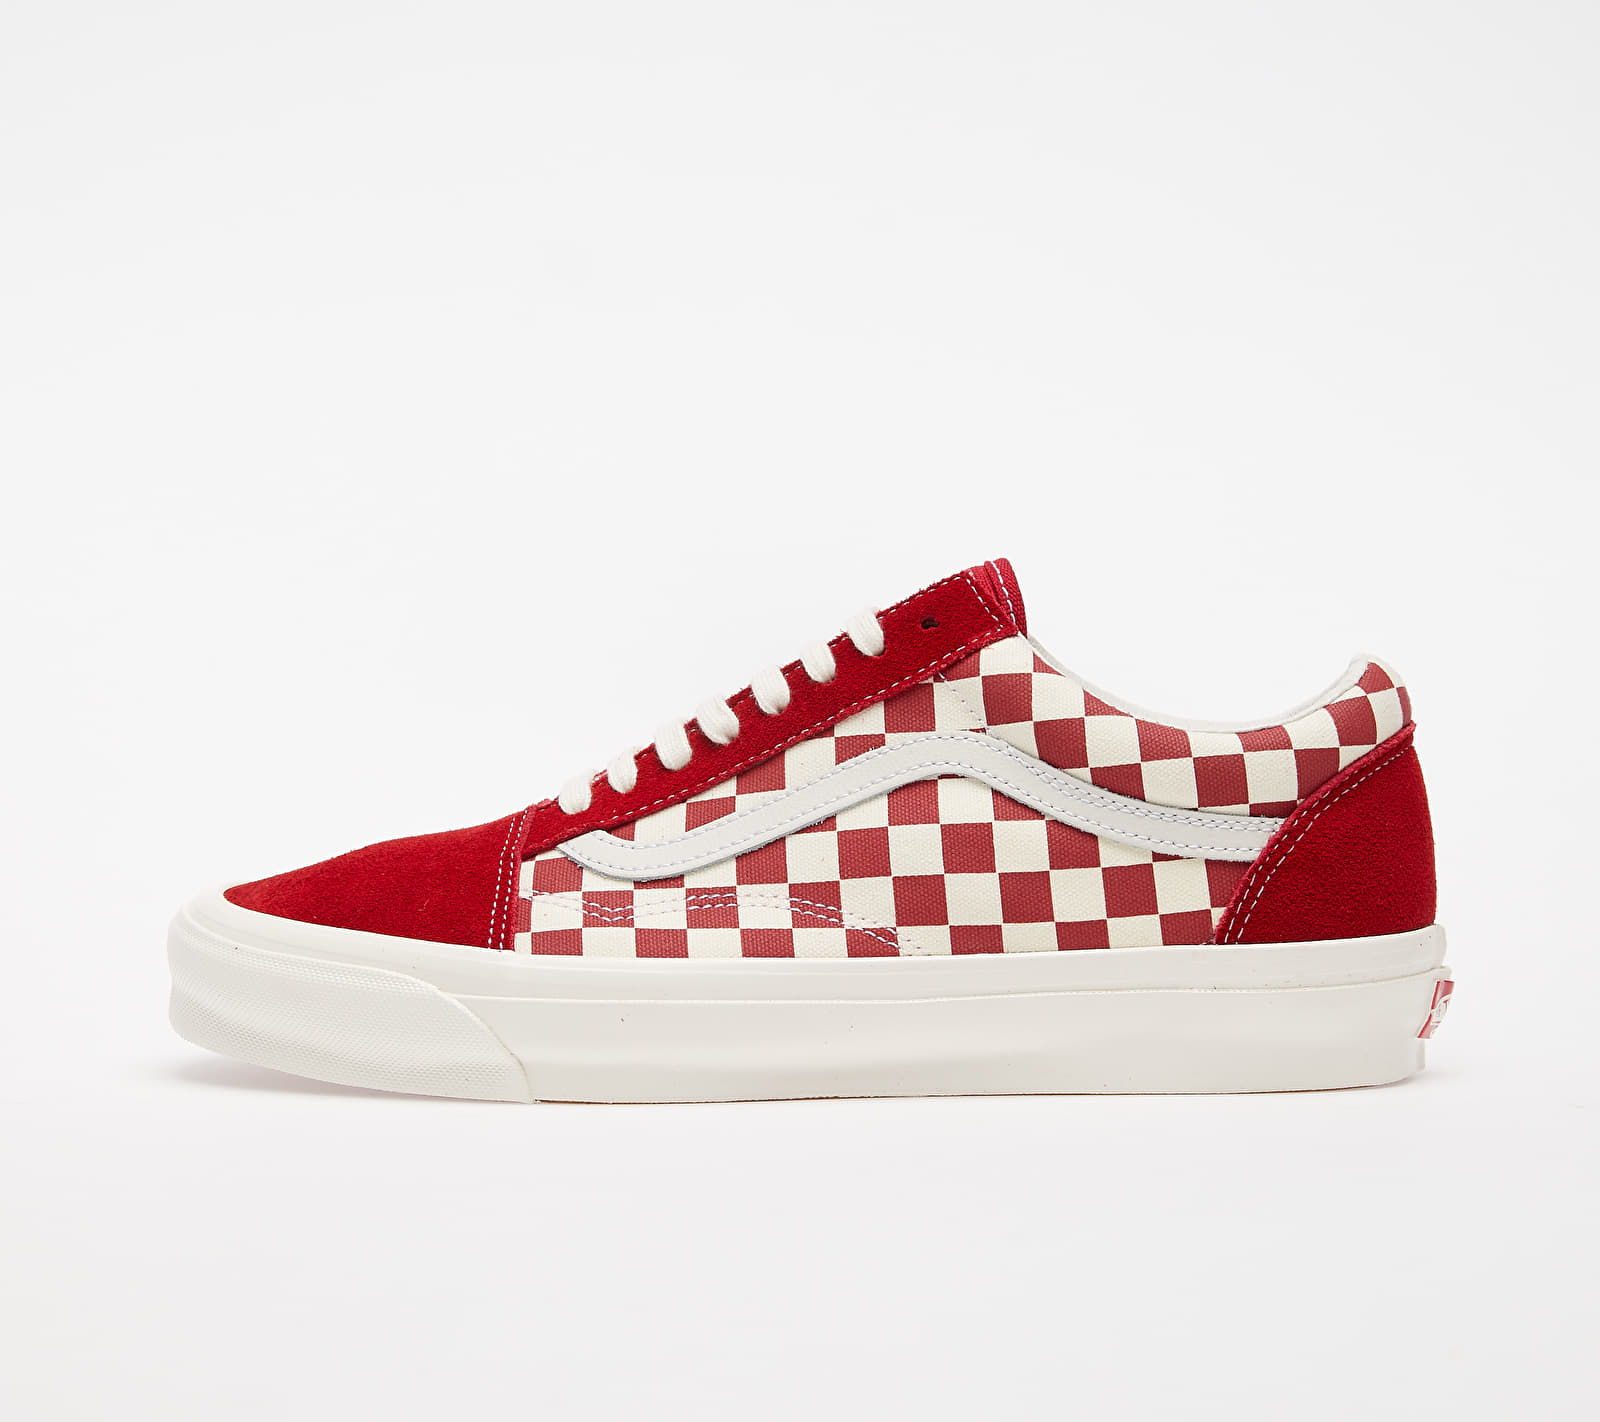 Vans OG Old Skool LX (Suede/ Canvas) Checkerboard Red/ White VN0A4P3XXEK1